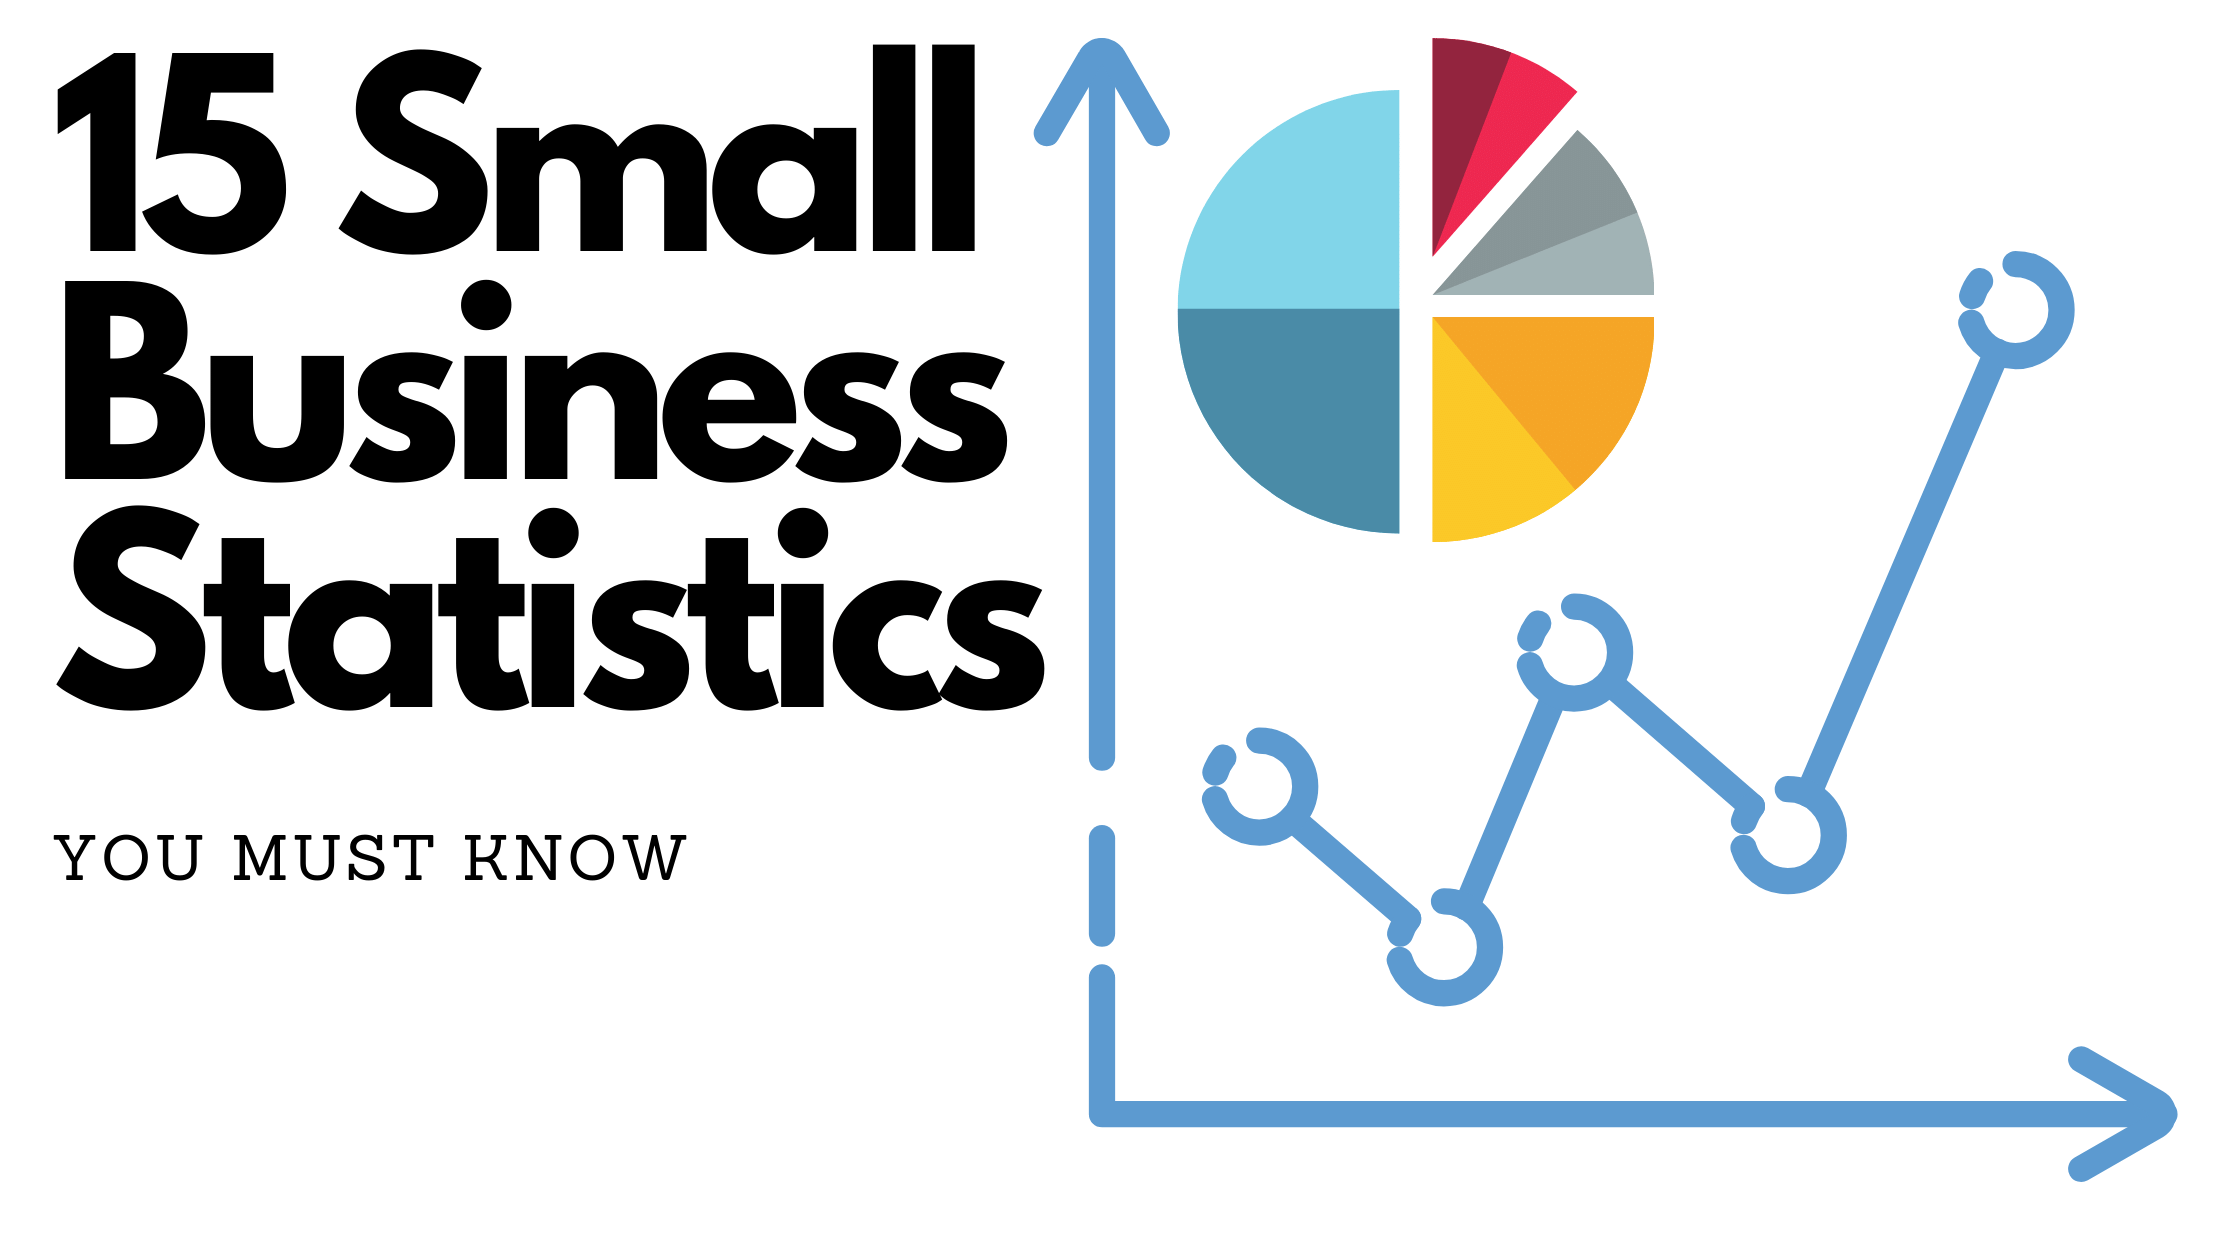 15 Small Business Statistics